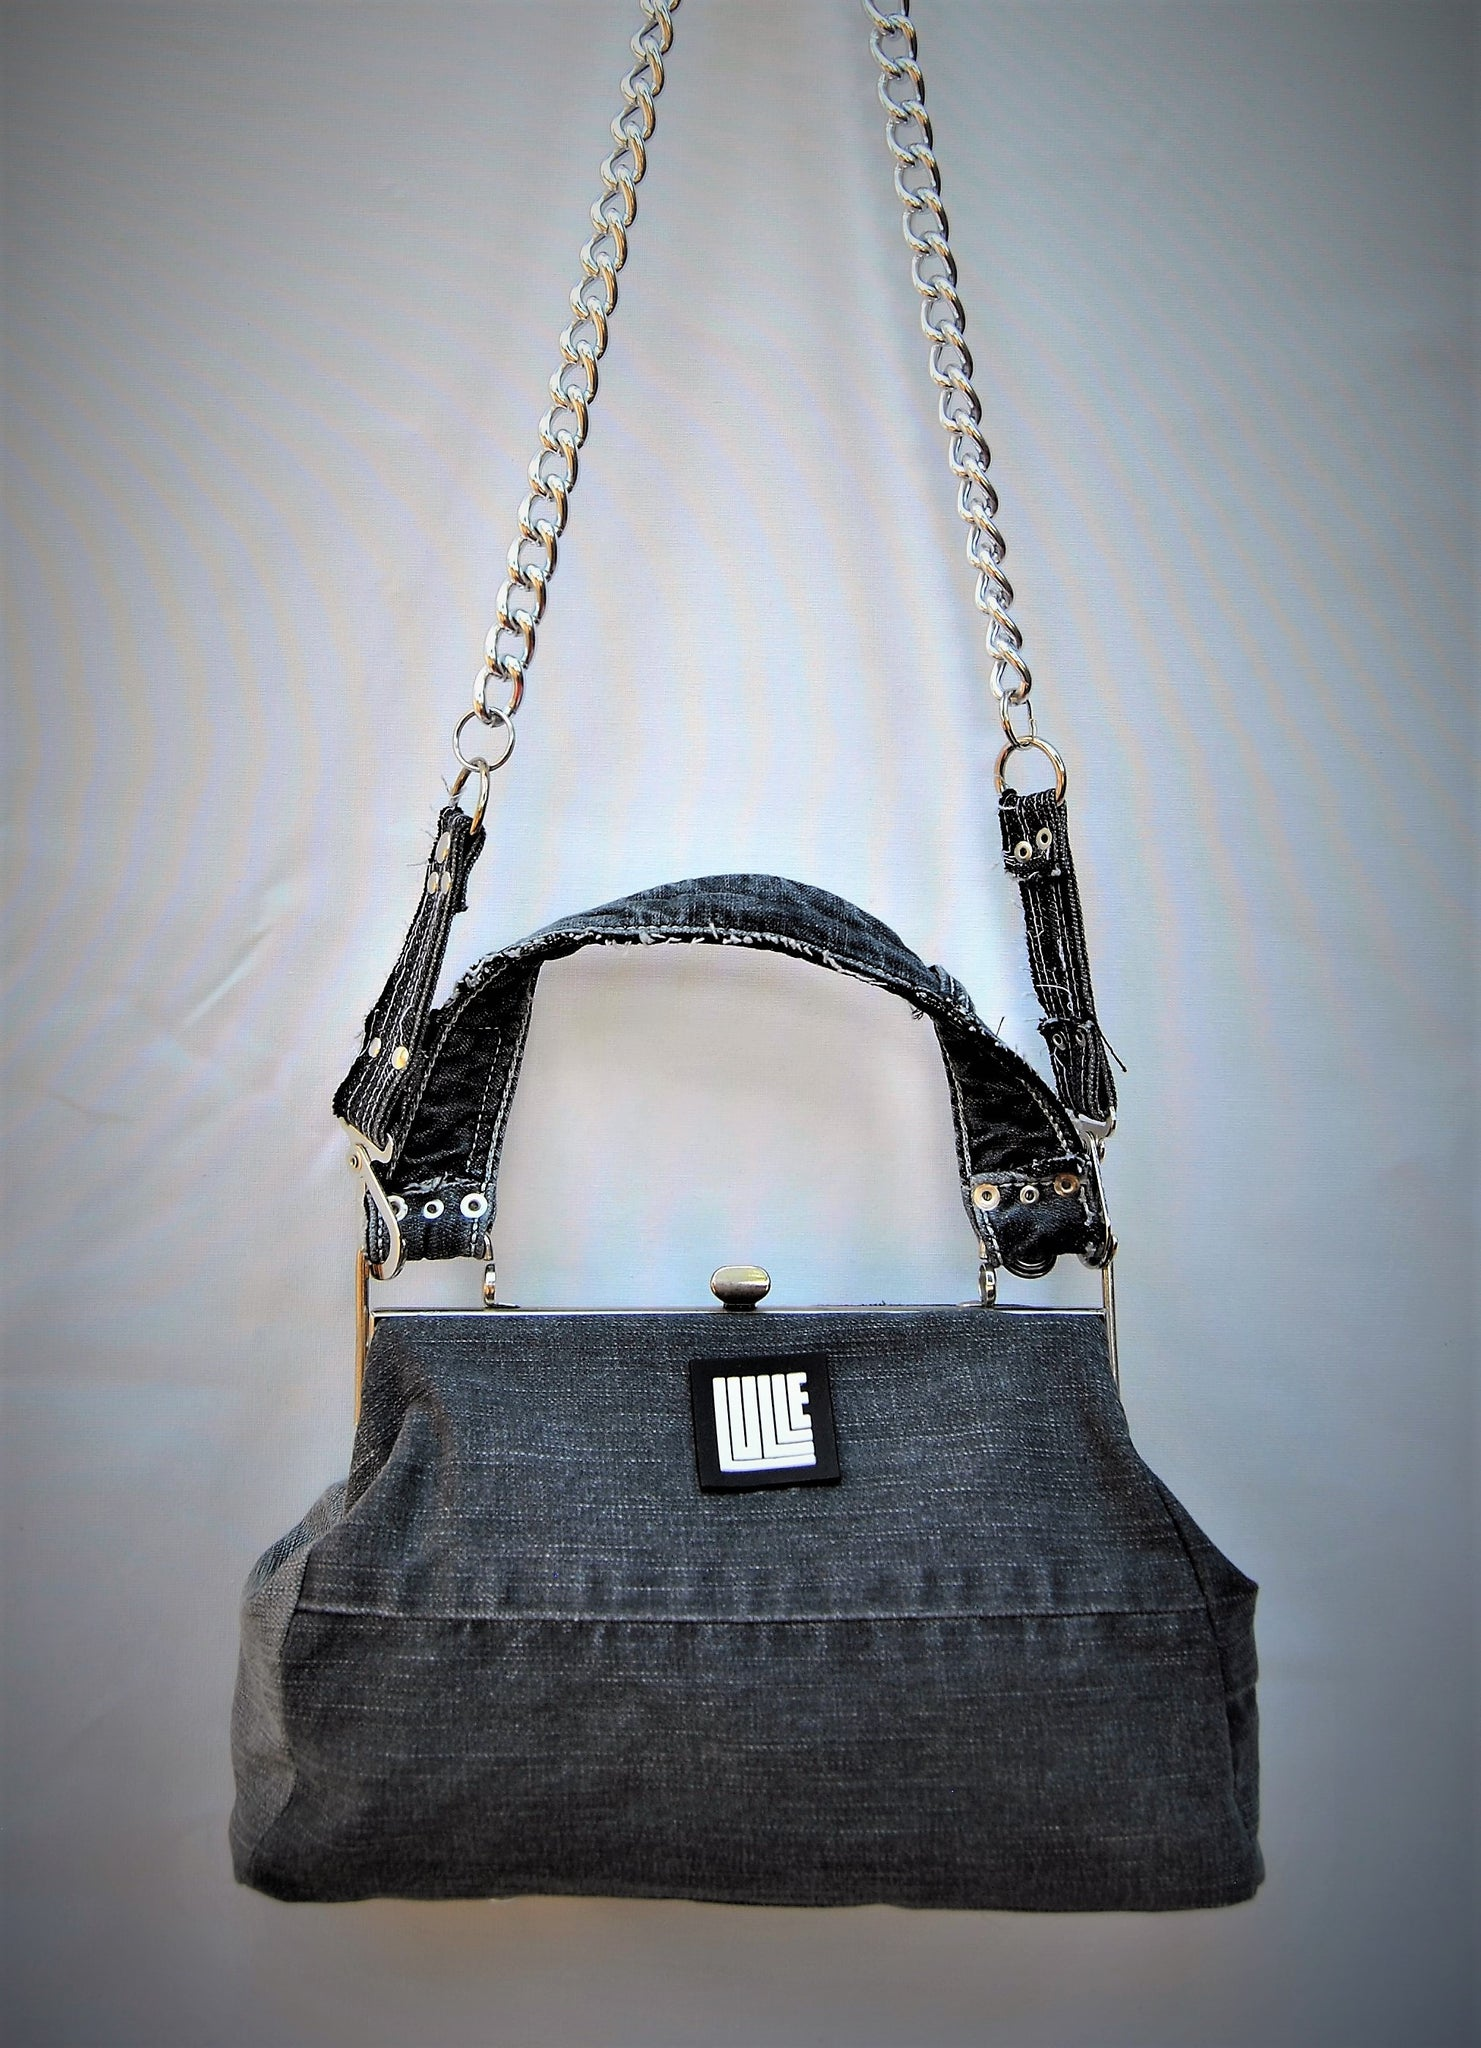 6) Rock´n´Roll Sircus bag